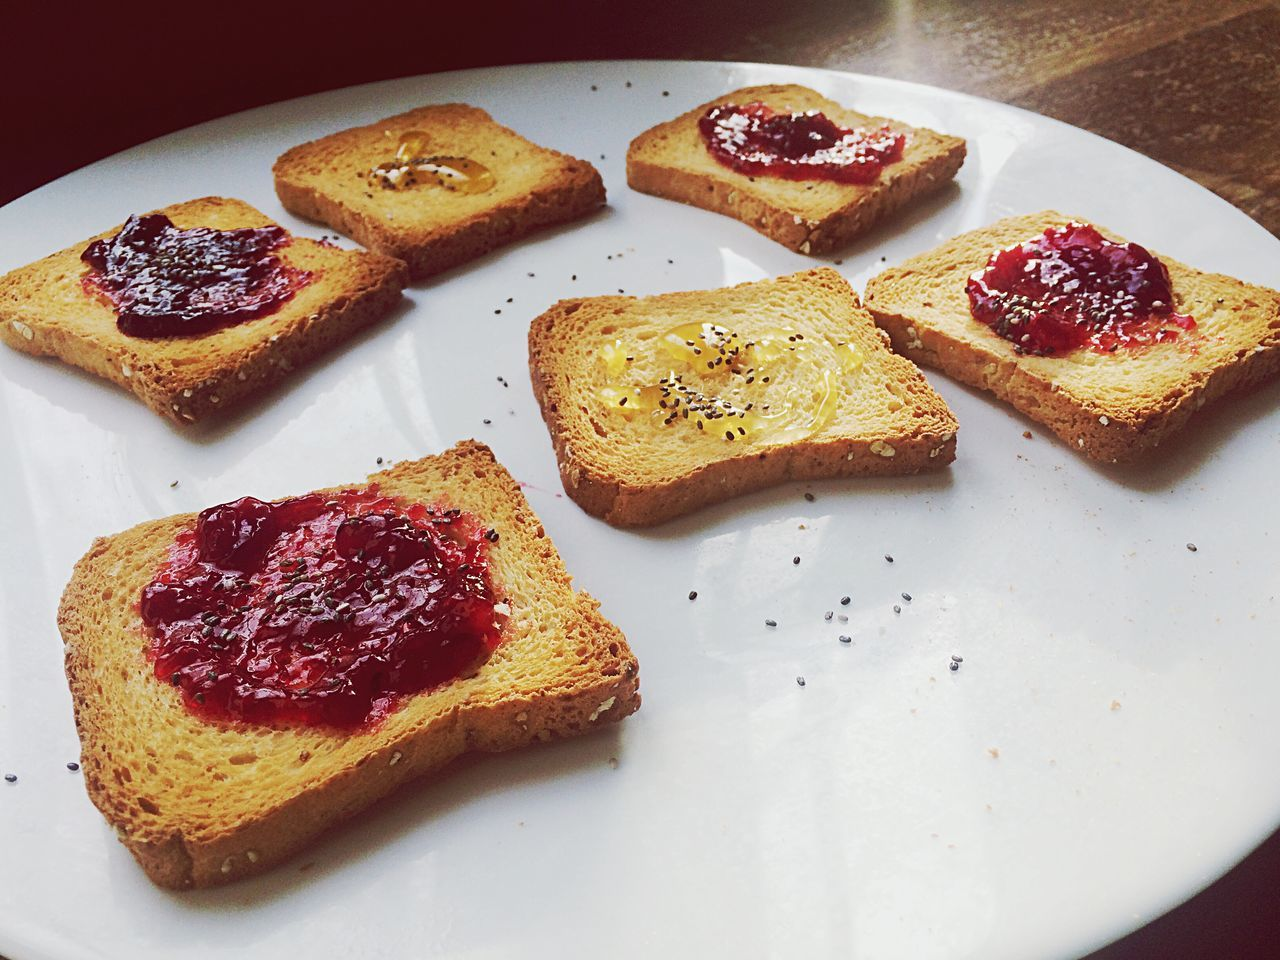 Feeling Thankful Breakfast Jellyfruits Food Food And Drink Toasted Bread Plate Ready-to-eat Bread No People High Angle View Indoors  Healthy Eating SLICE Freshness Sandwich Day Buongiorno Buenosdias Bomdia Chiaseeds Rome, Italy Getting Inspired Creativity Getting Creative